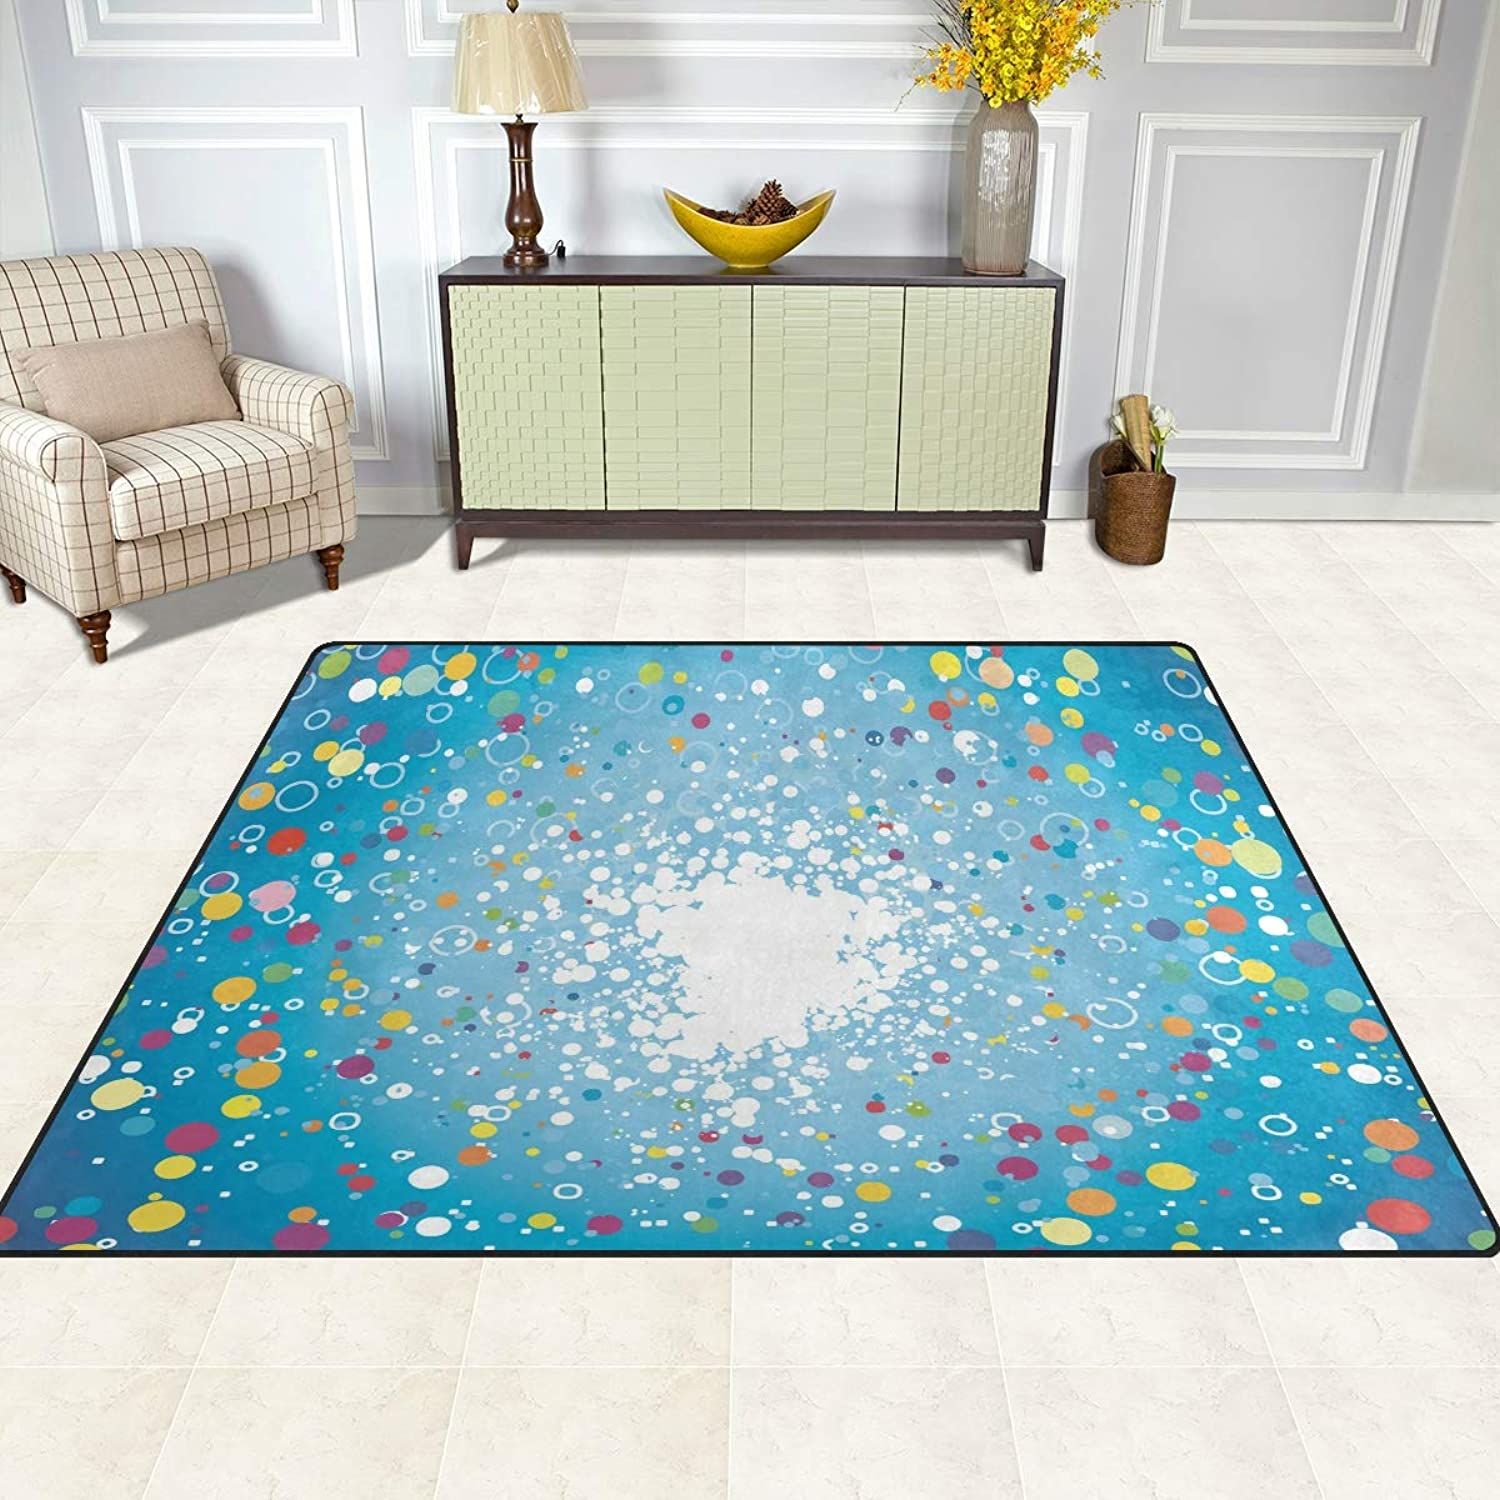 FAJRO colorful Dots Pattern Rugs for entryway Doormat Area Rug Multipattern Door Mat shoes Scraper Home Dec Anti-Slip Indoor Outdoor